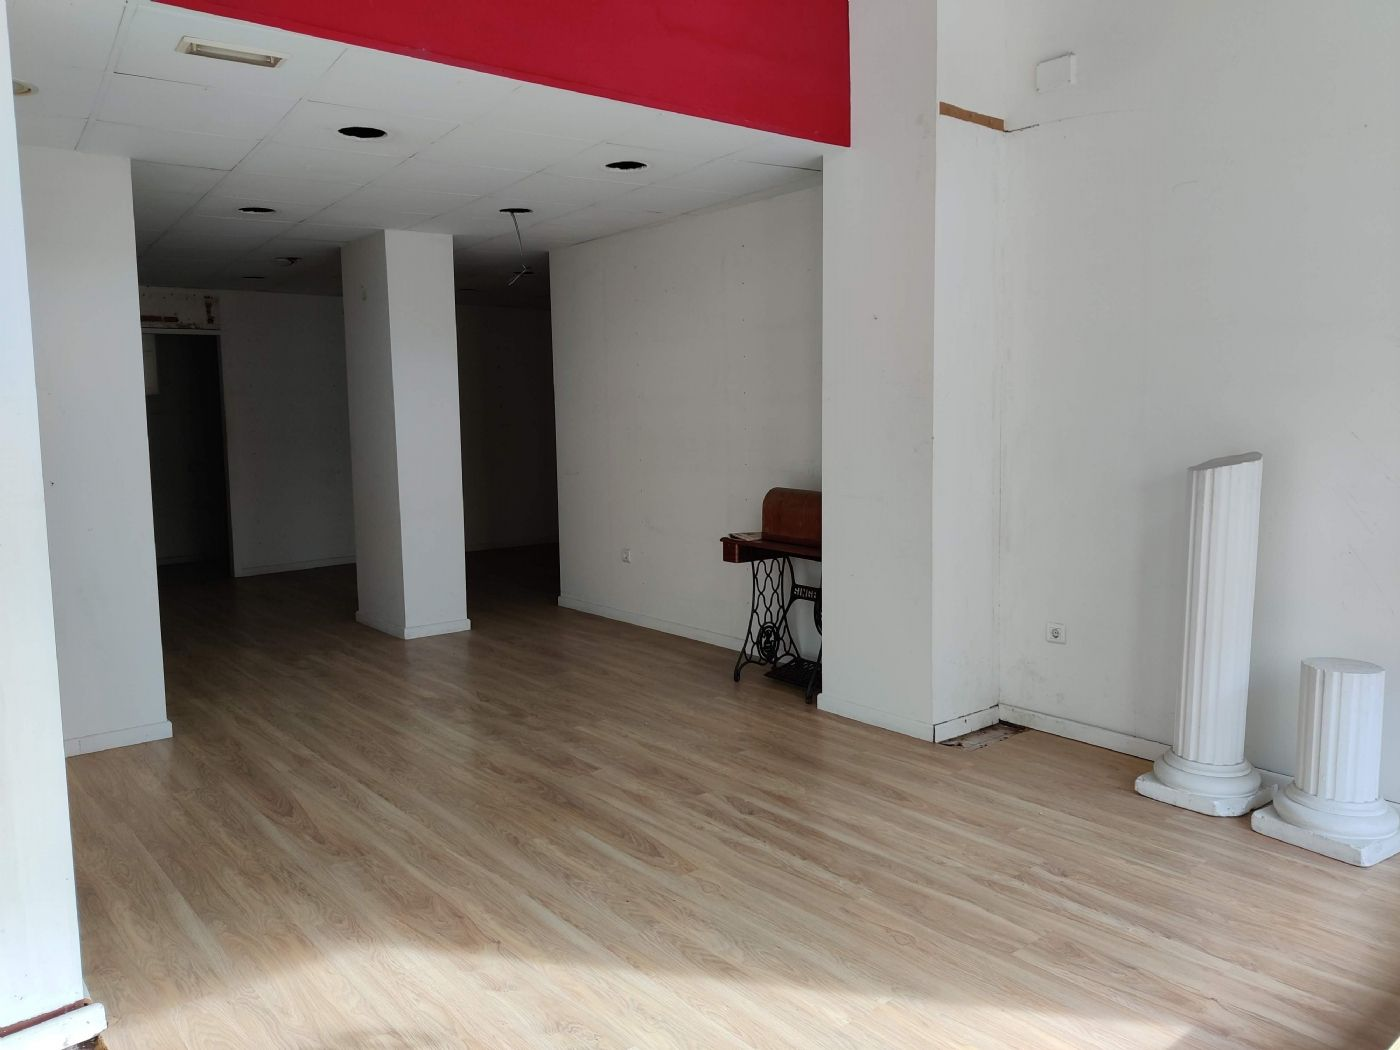 Rent Business premise in Carrer francesc gimeno (de), 5. Céntrico local apto para comercio o oficina